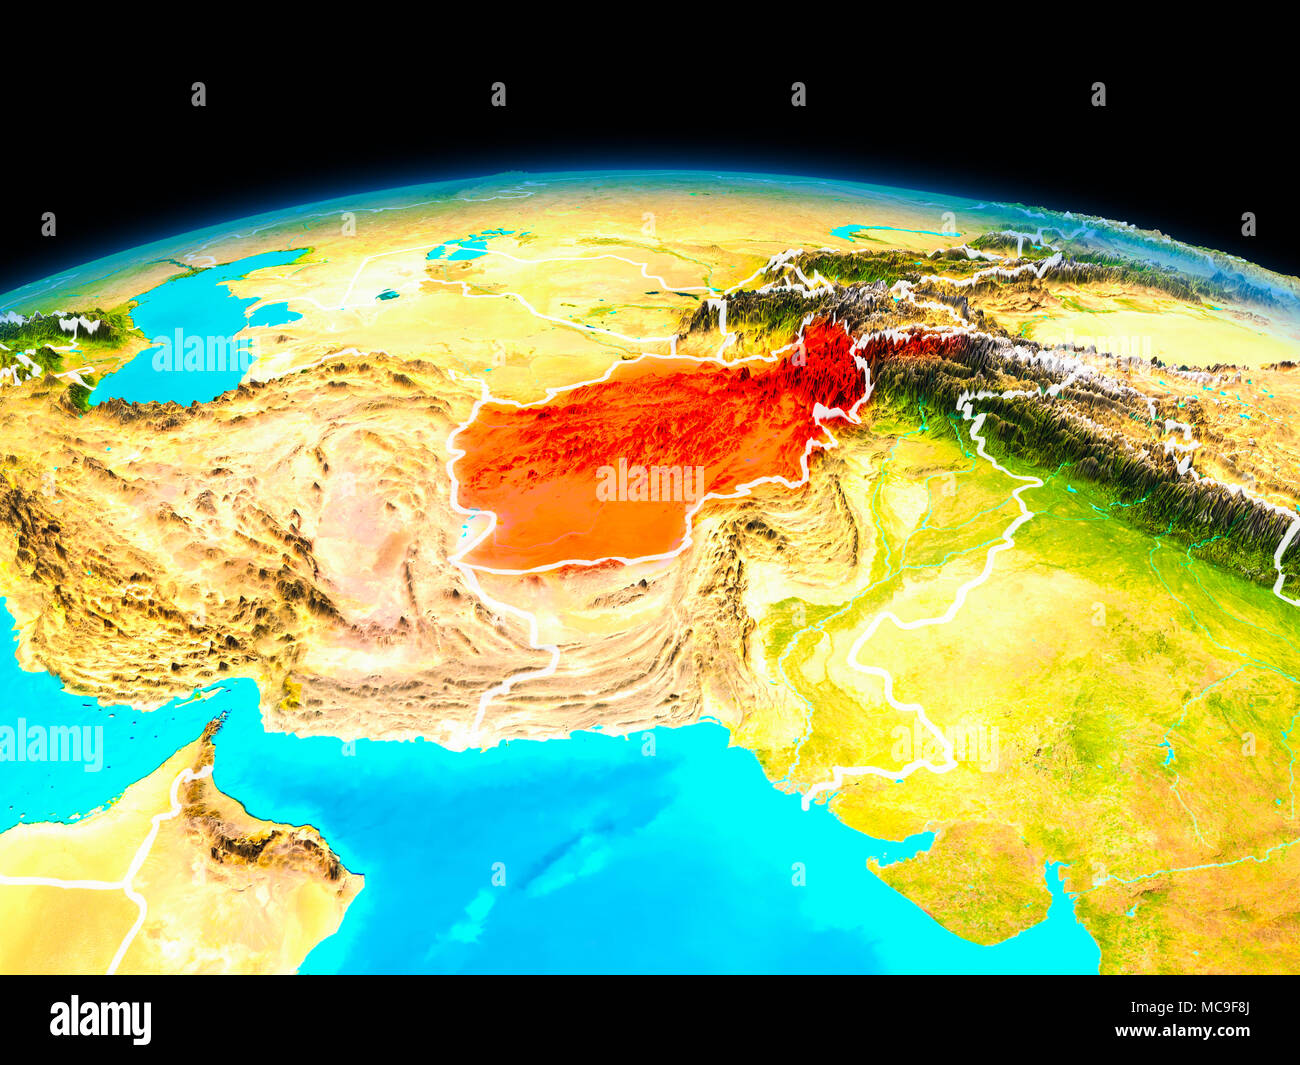 Afghanistan map red border stock photos afghanistan map red border satellite view of afghanistan highlighted in red on planet earth with borderlines 3d illustration gumiabroncs Image collections